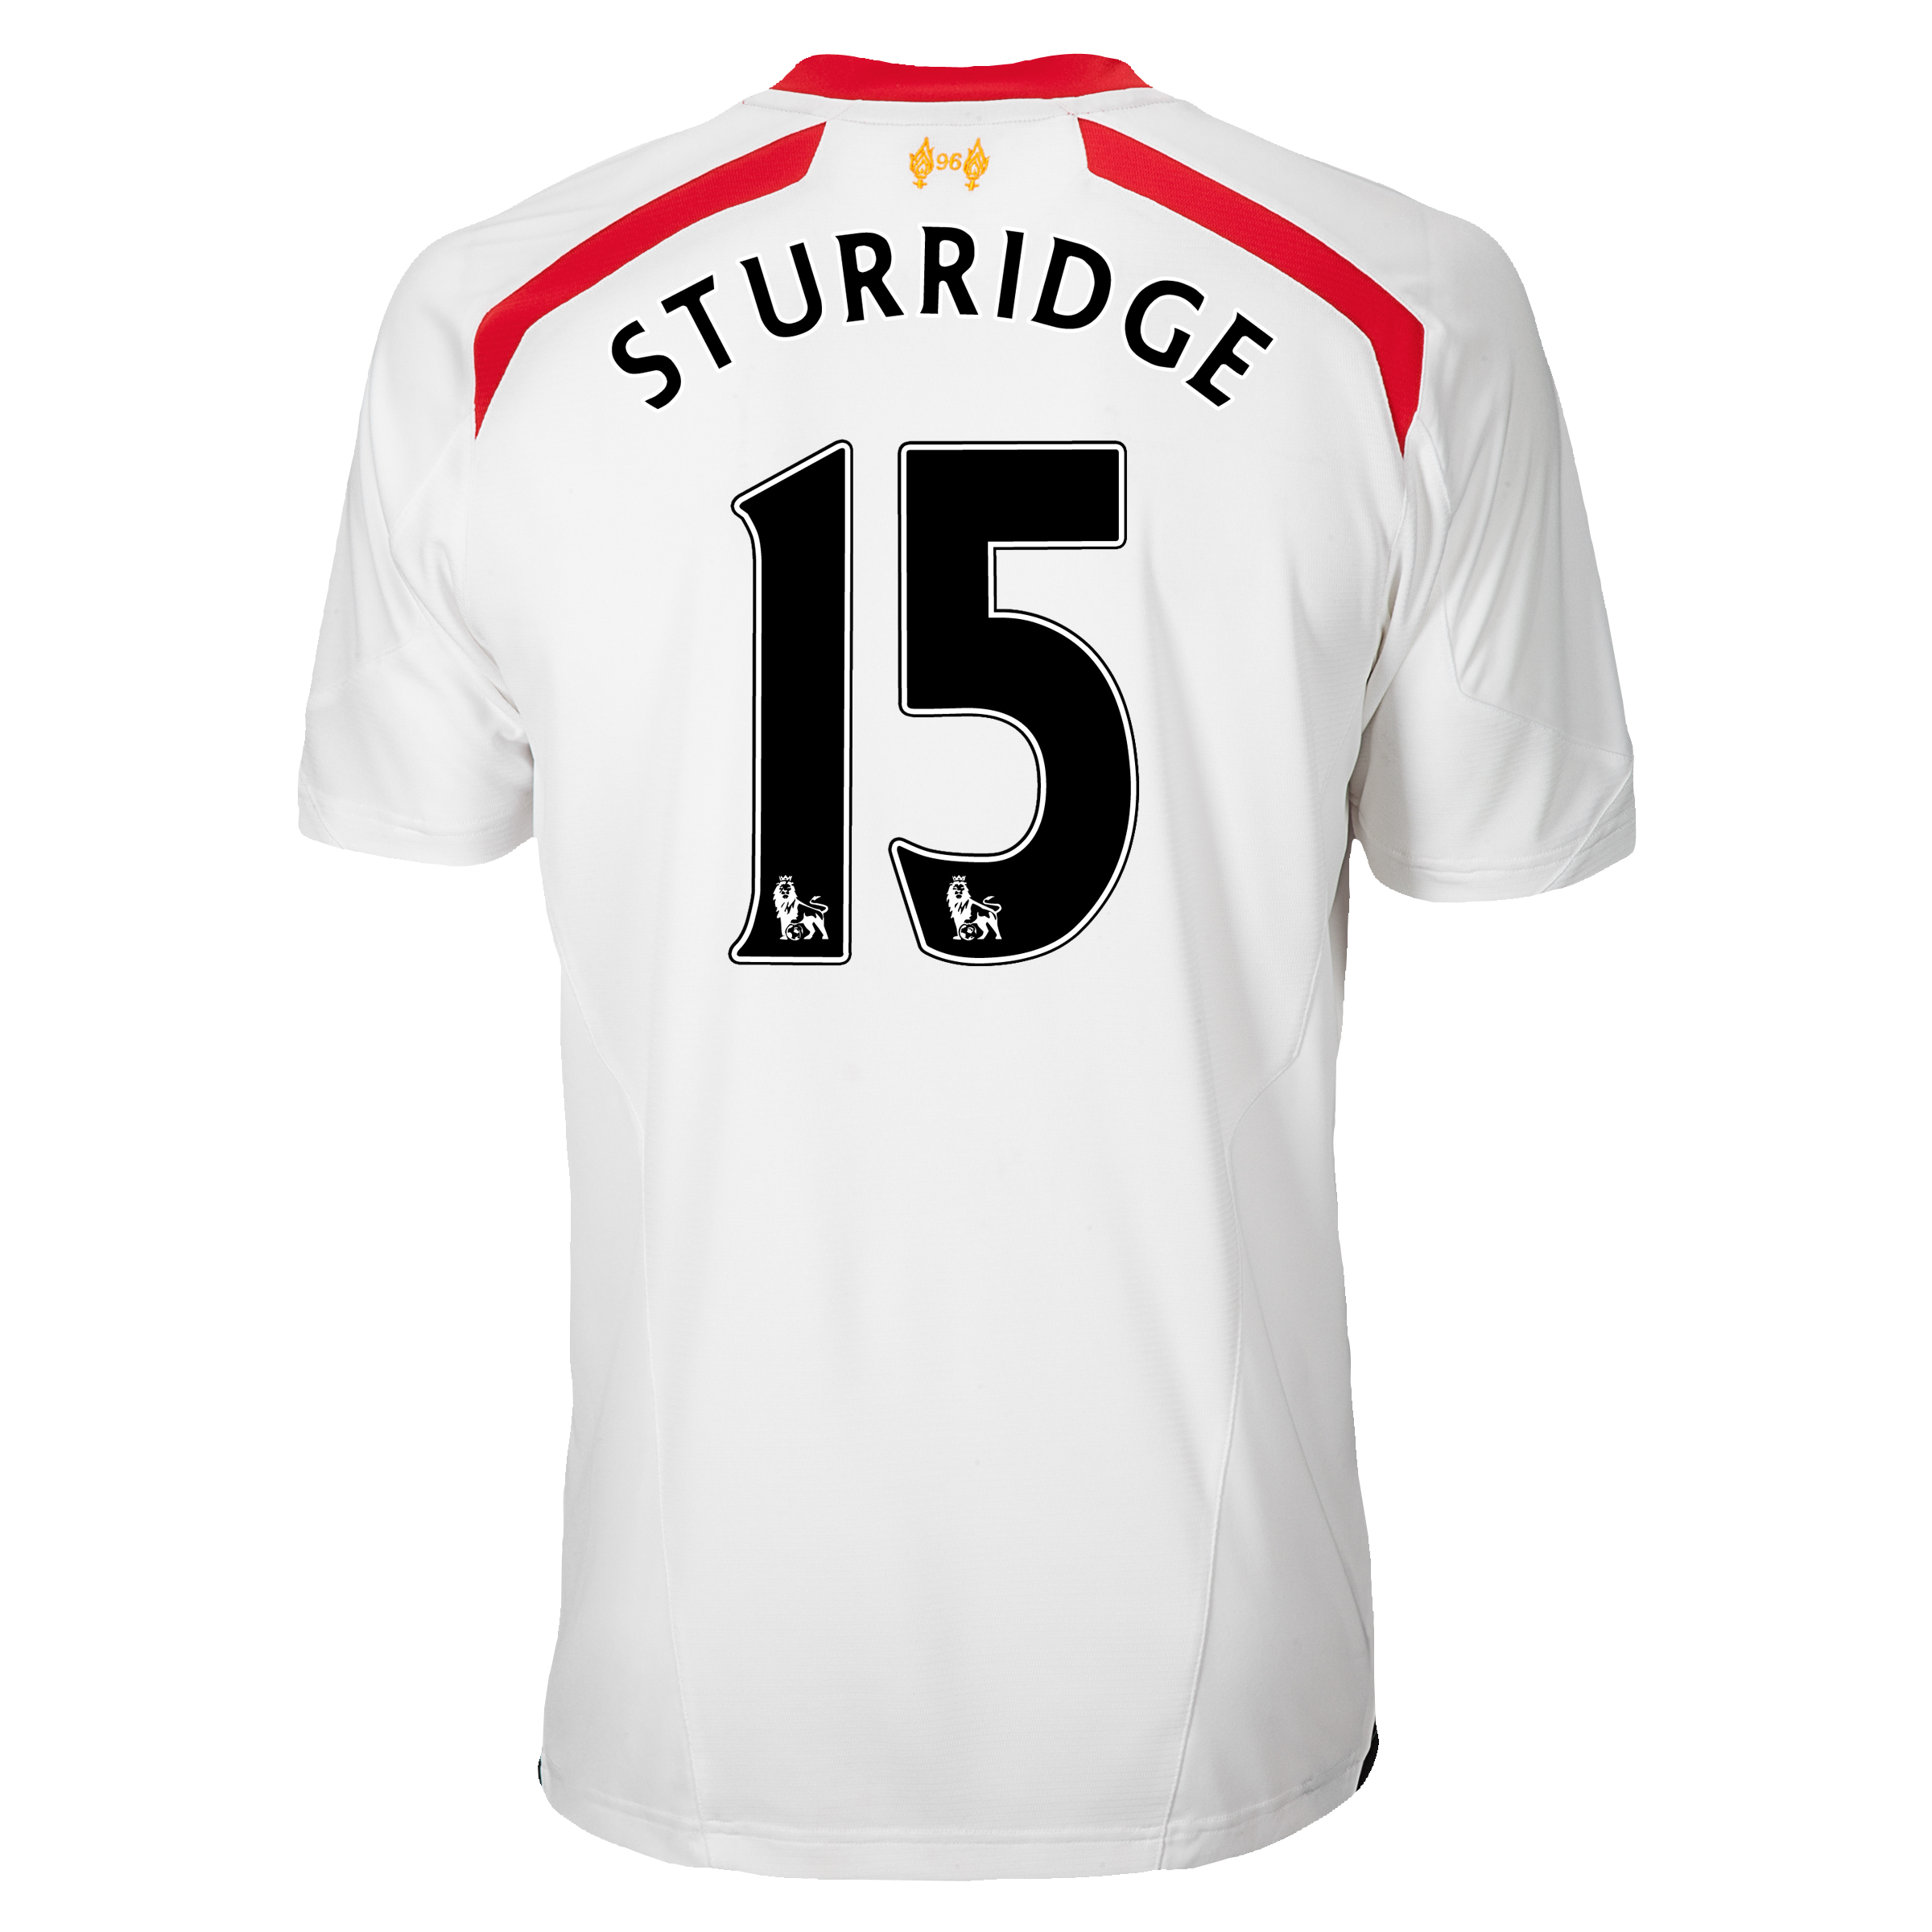 Liverpool Away Shirt 2013/14 with Sturridge 15 printing